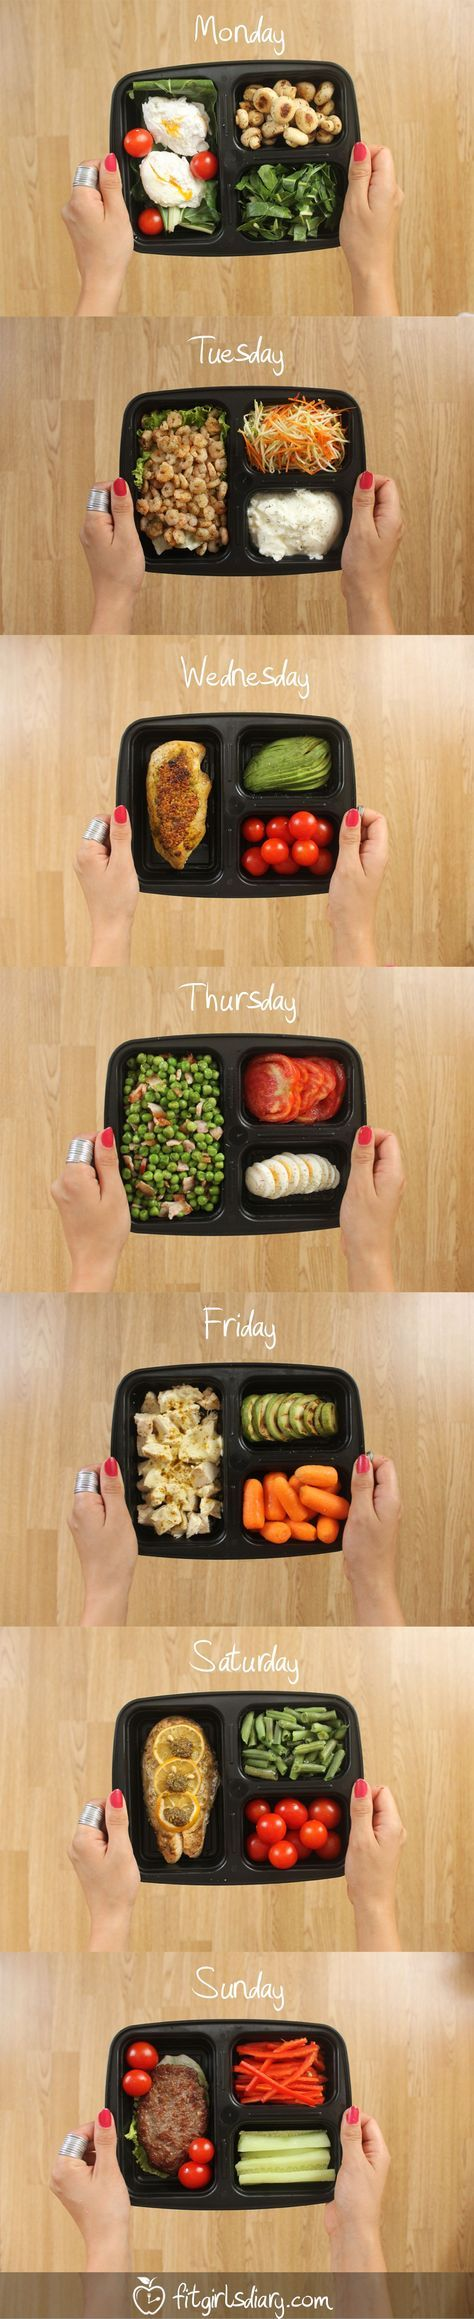 7 Days Of Healthy Meal Prep Ideas – Ready To Eat Meals and Protein On The Go Recipes